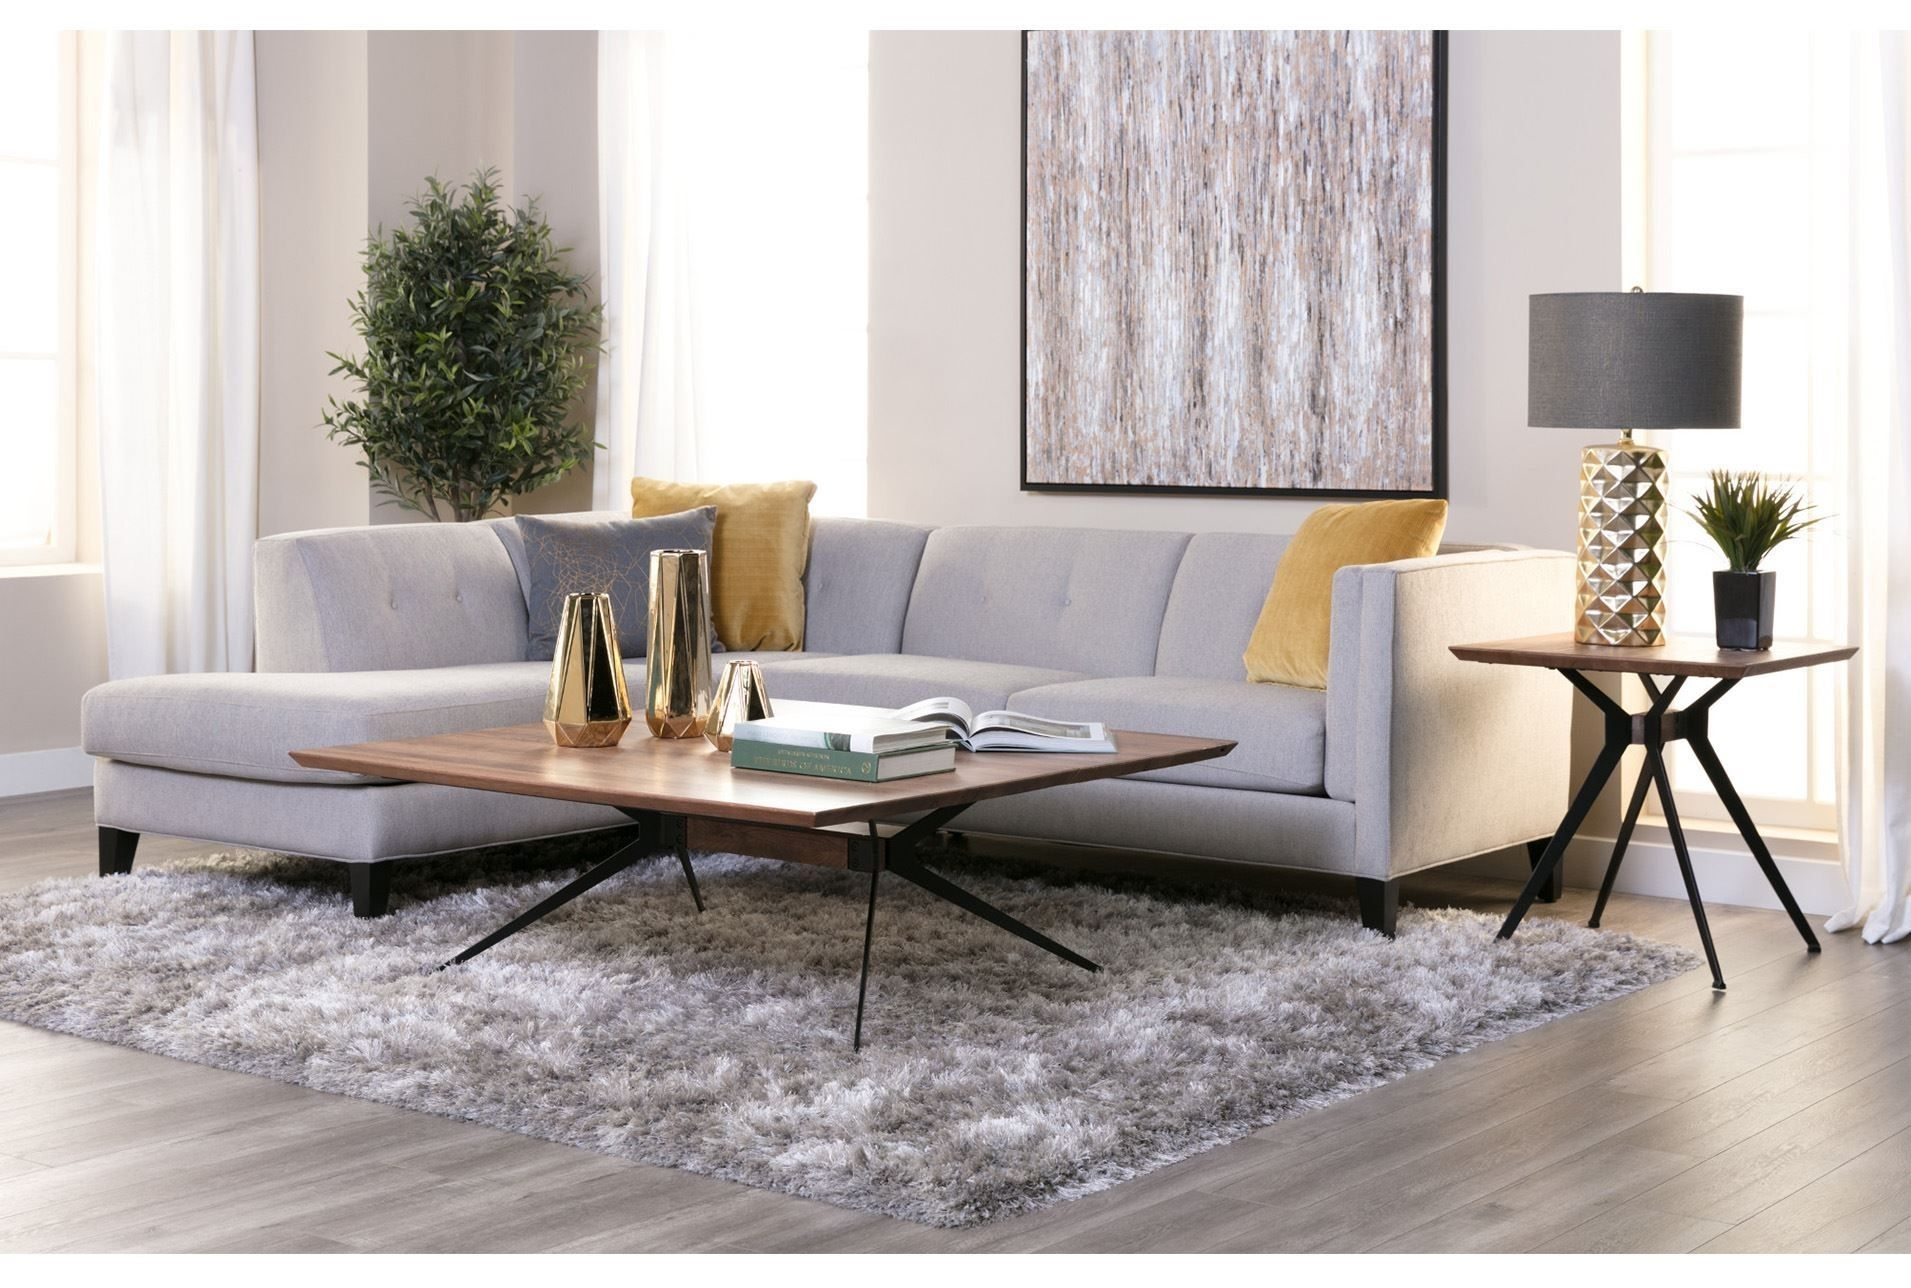 Avery 2 Piece Sectional W/laf Armless Chaise | Home Decor/interior Throughout Avery 2 Piece Sectionals With Raf Armless Chaise (Image 4 of 25)